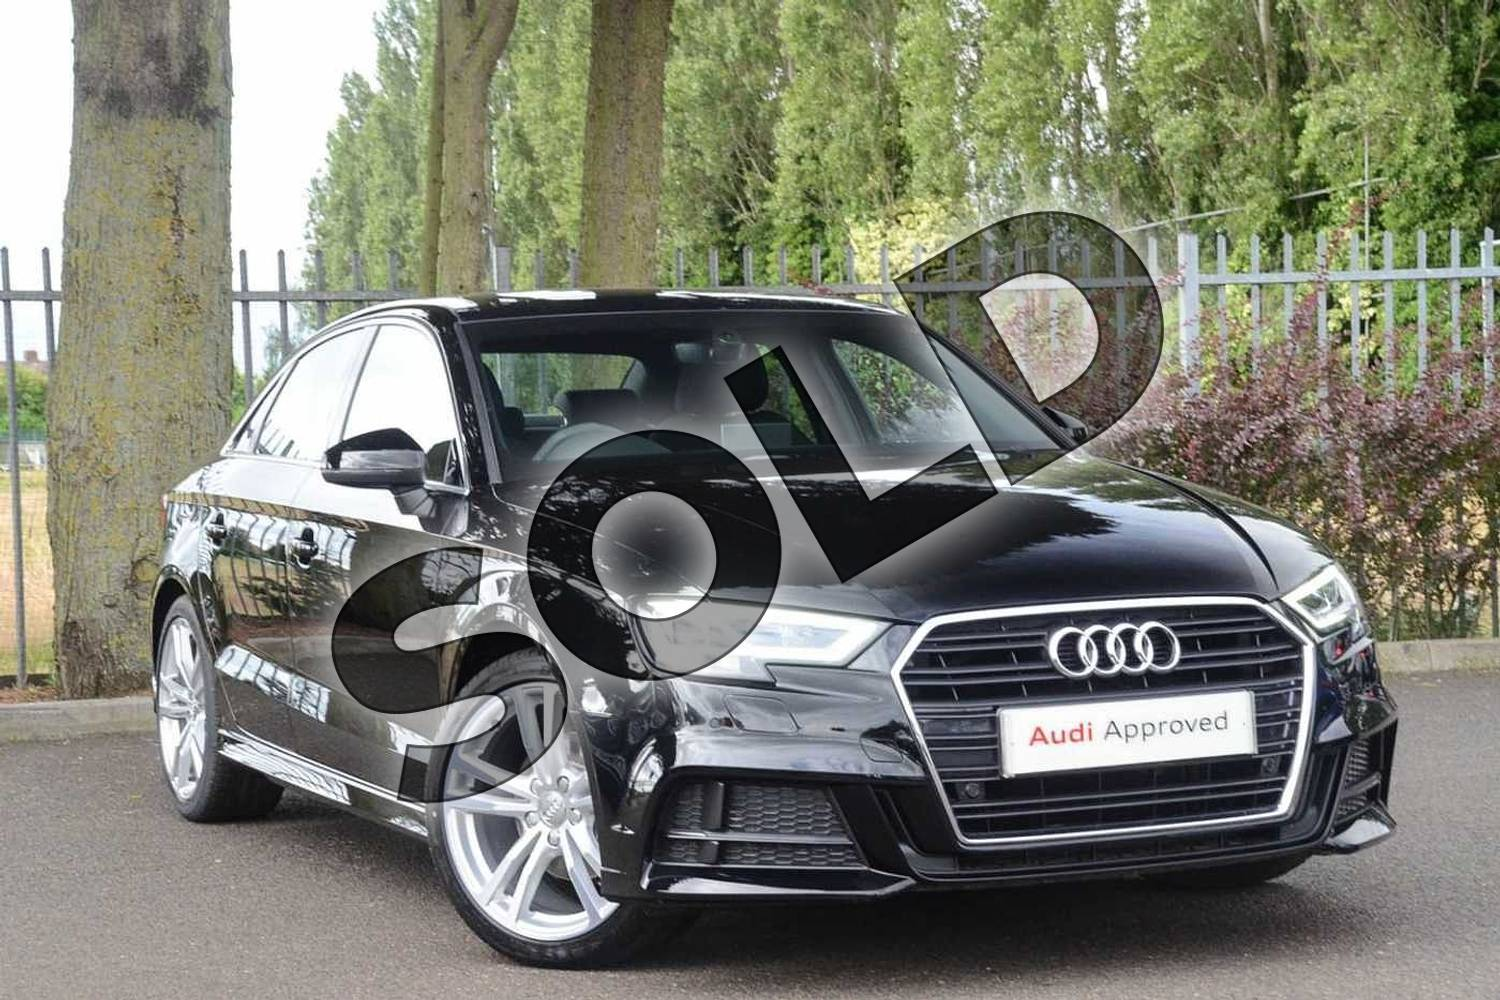 2019 Audi A3 Saloon 30 TFSI S Line 4dr S Tronic in Brilliant Black at Coventry Audi